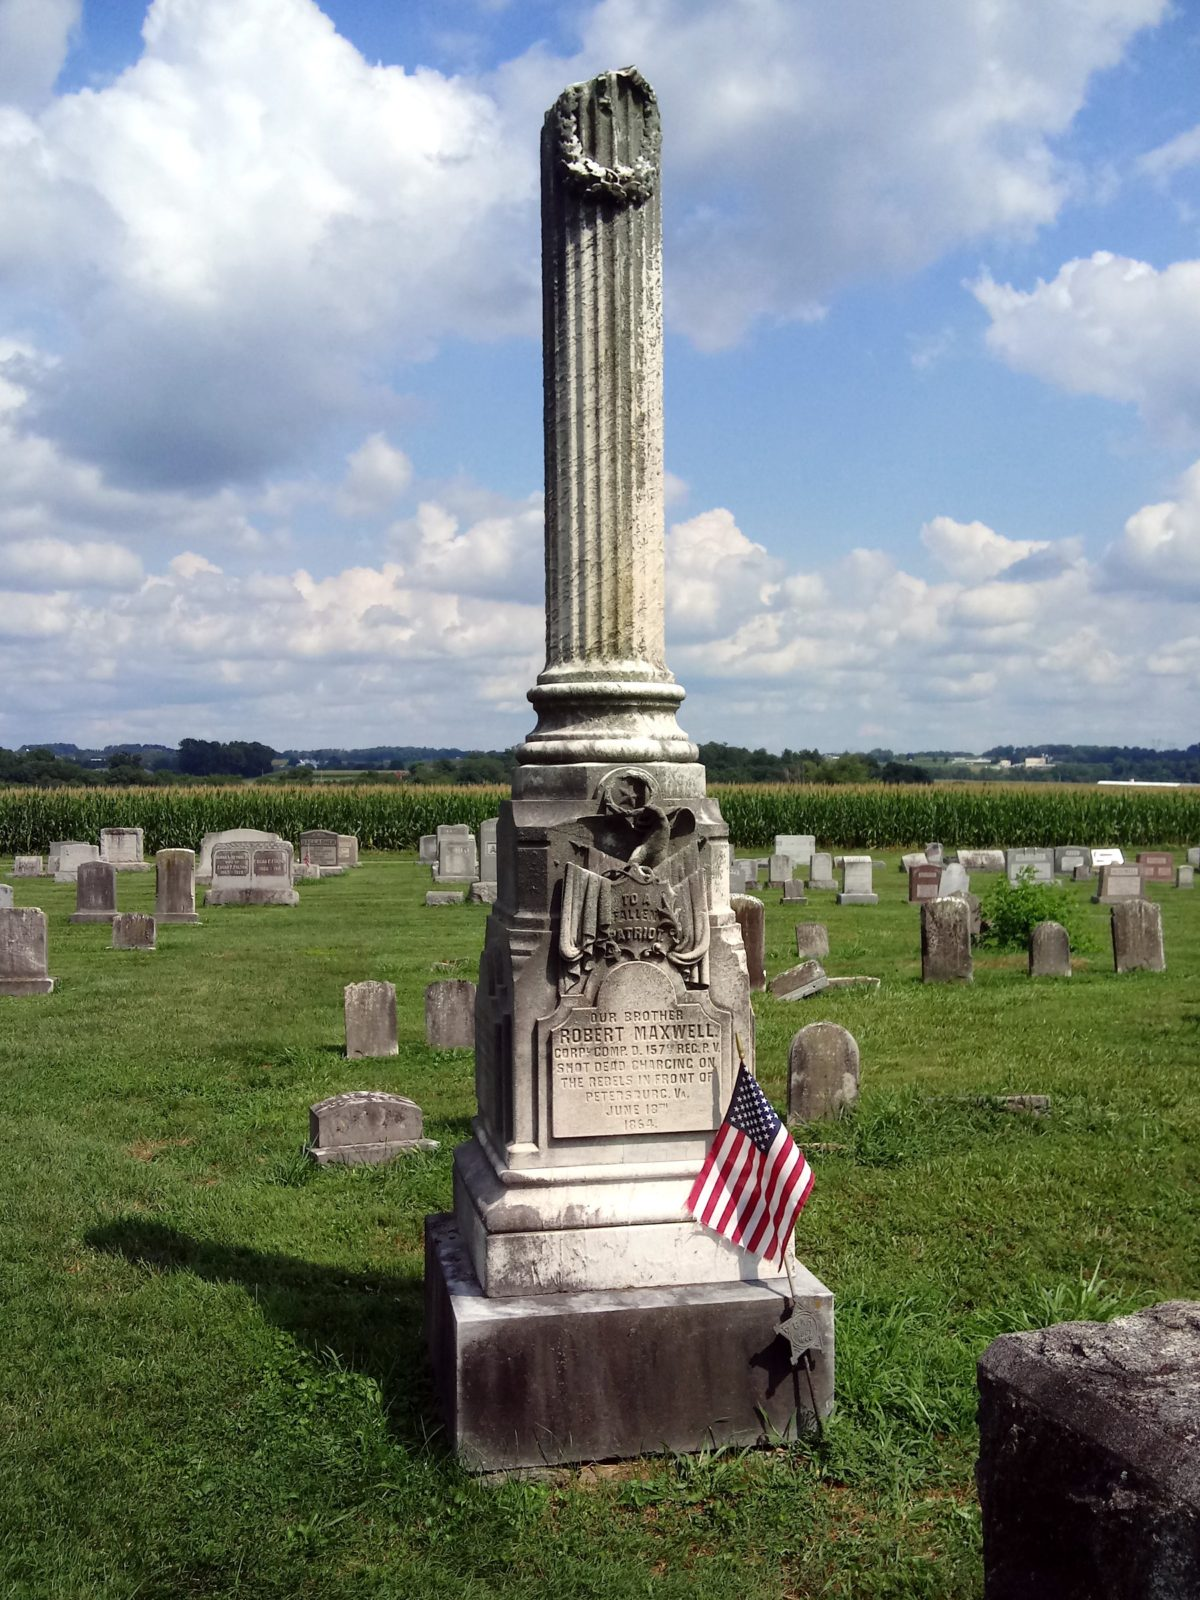 Monument for Robert Maxwell, casualty of the Civil War